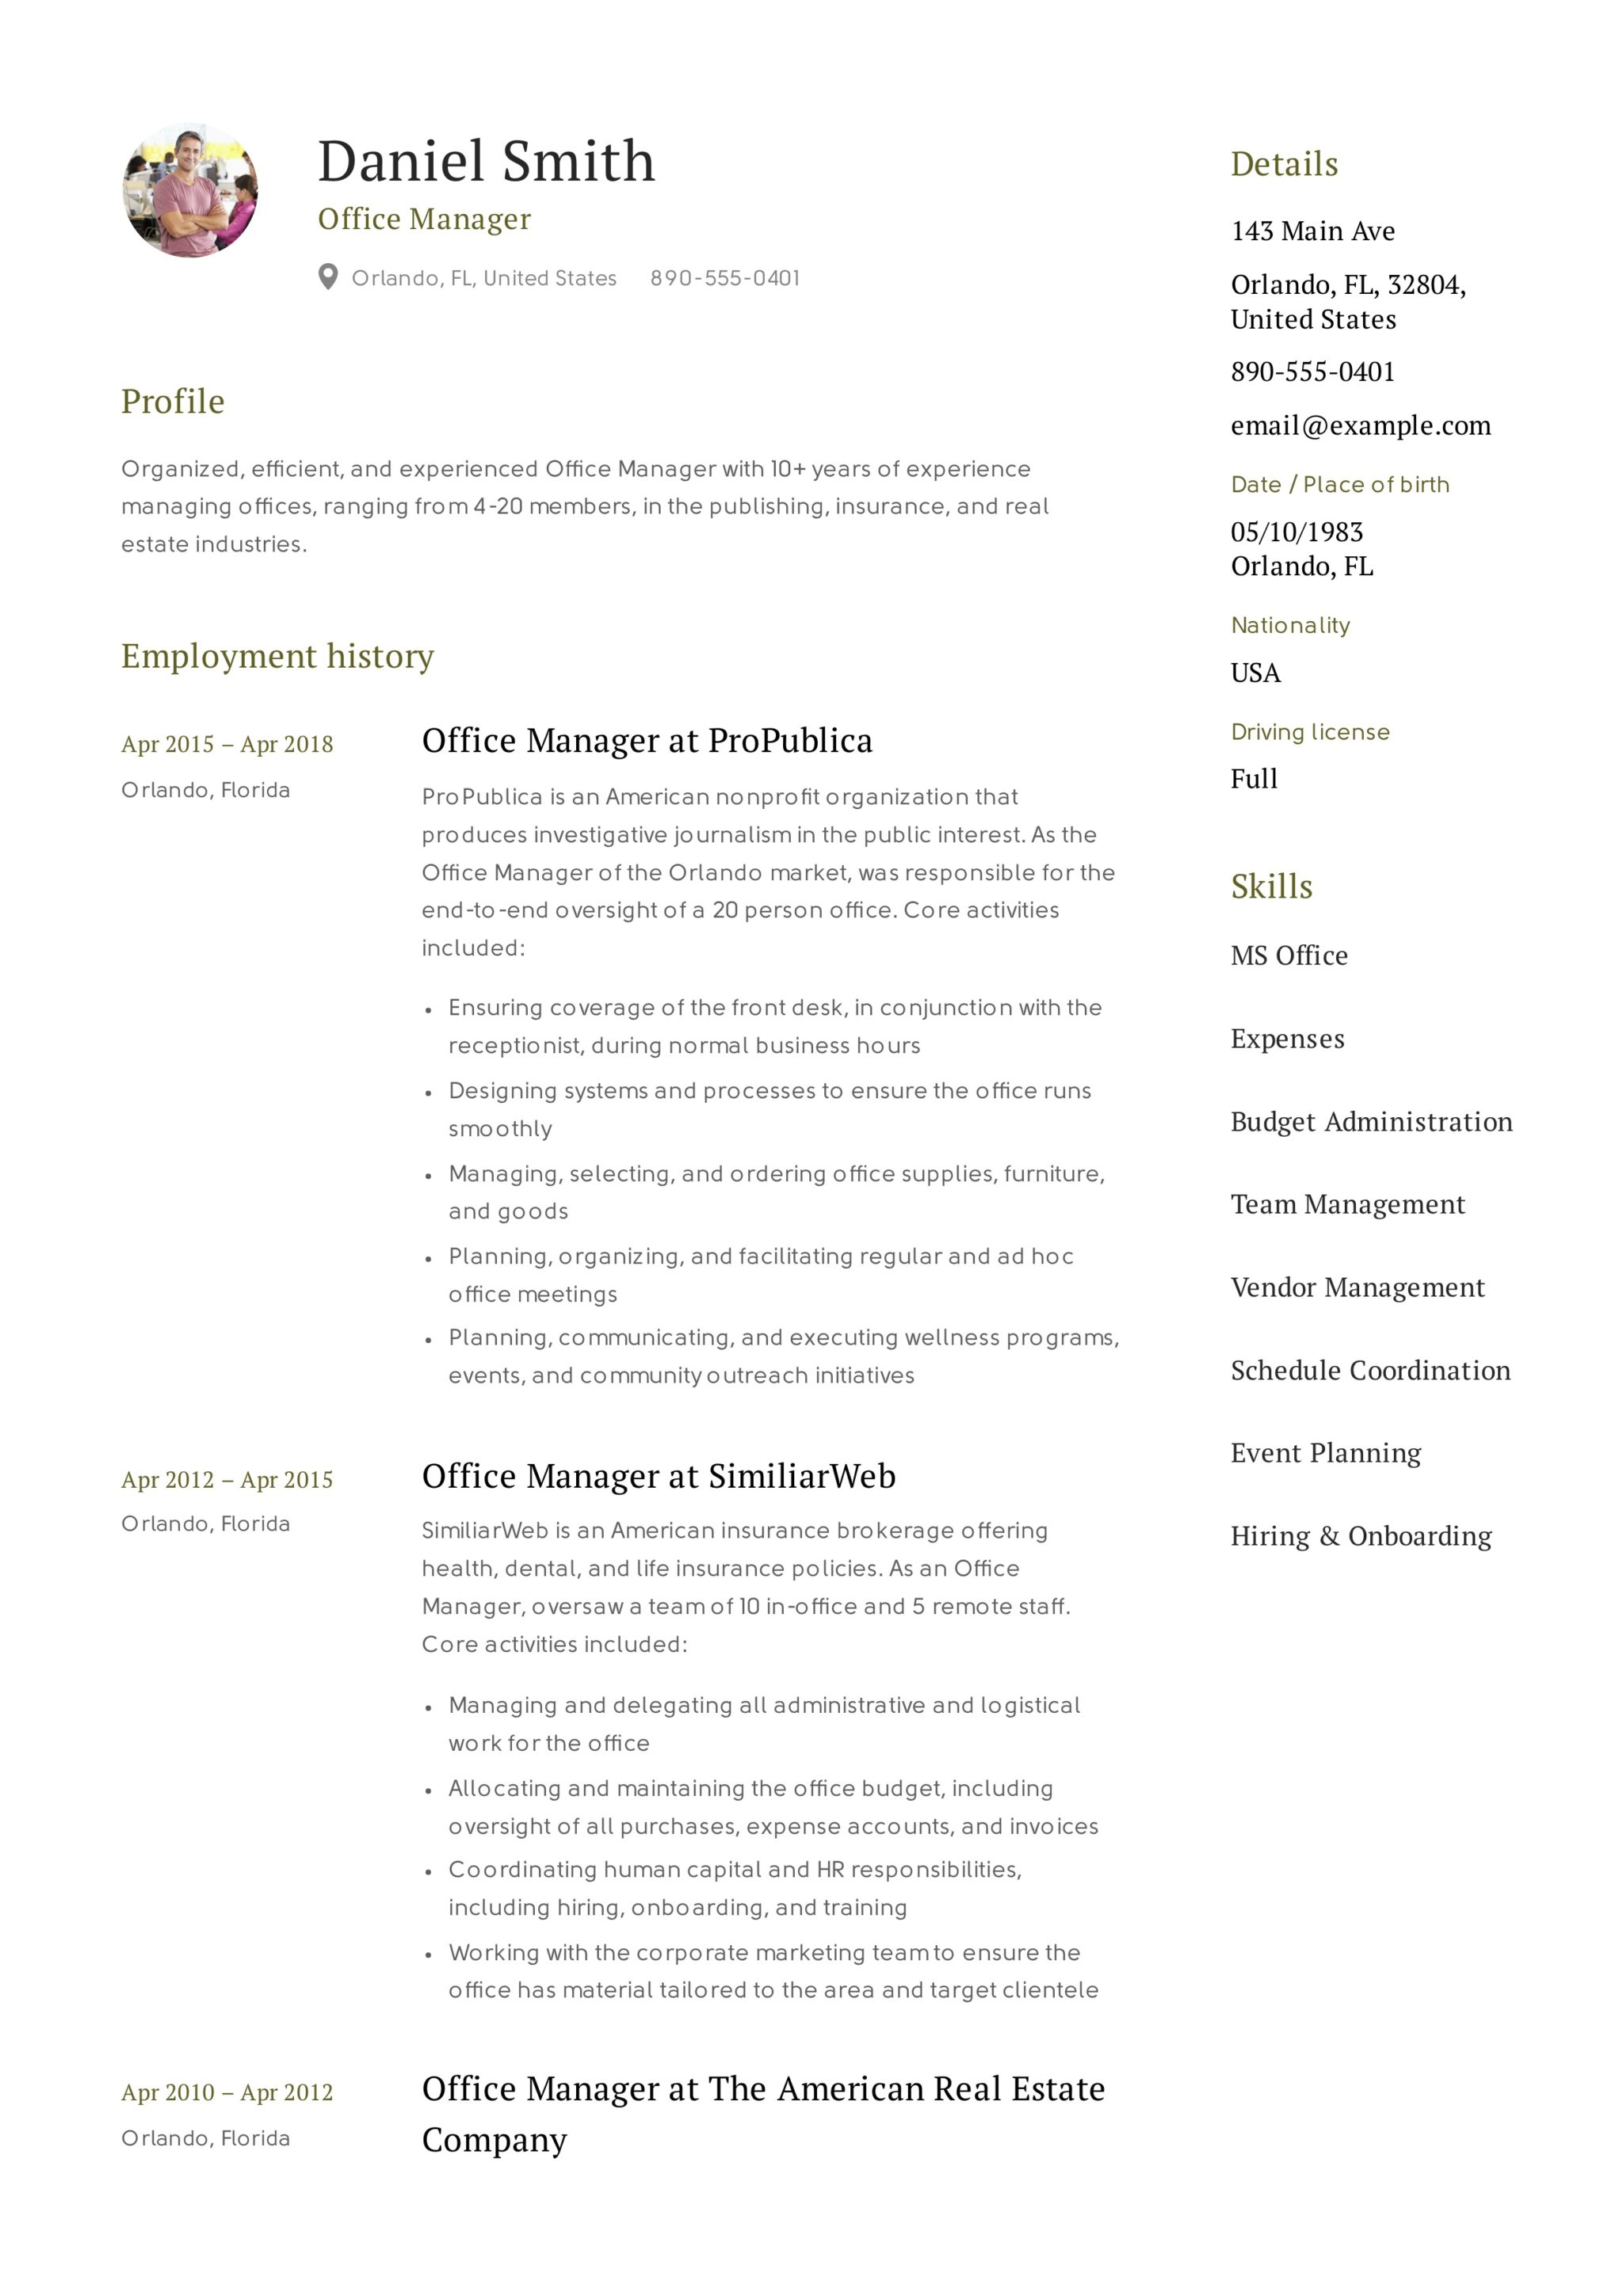 Office Administration Resume Examples Guide Office Manager Resume 43 12 Samples Pdf 2019